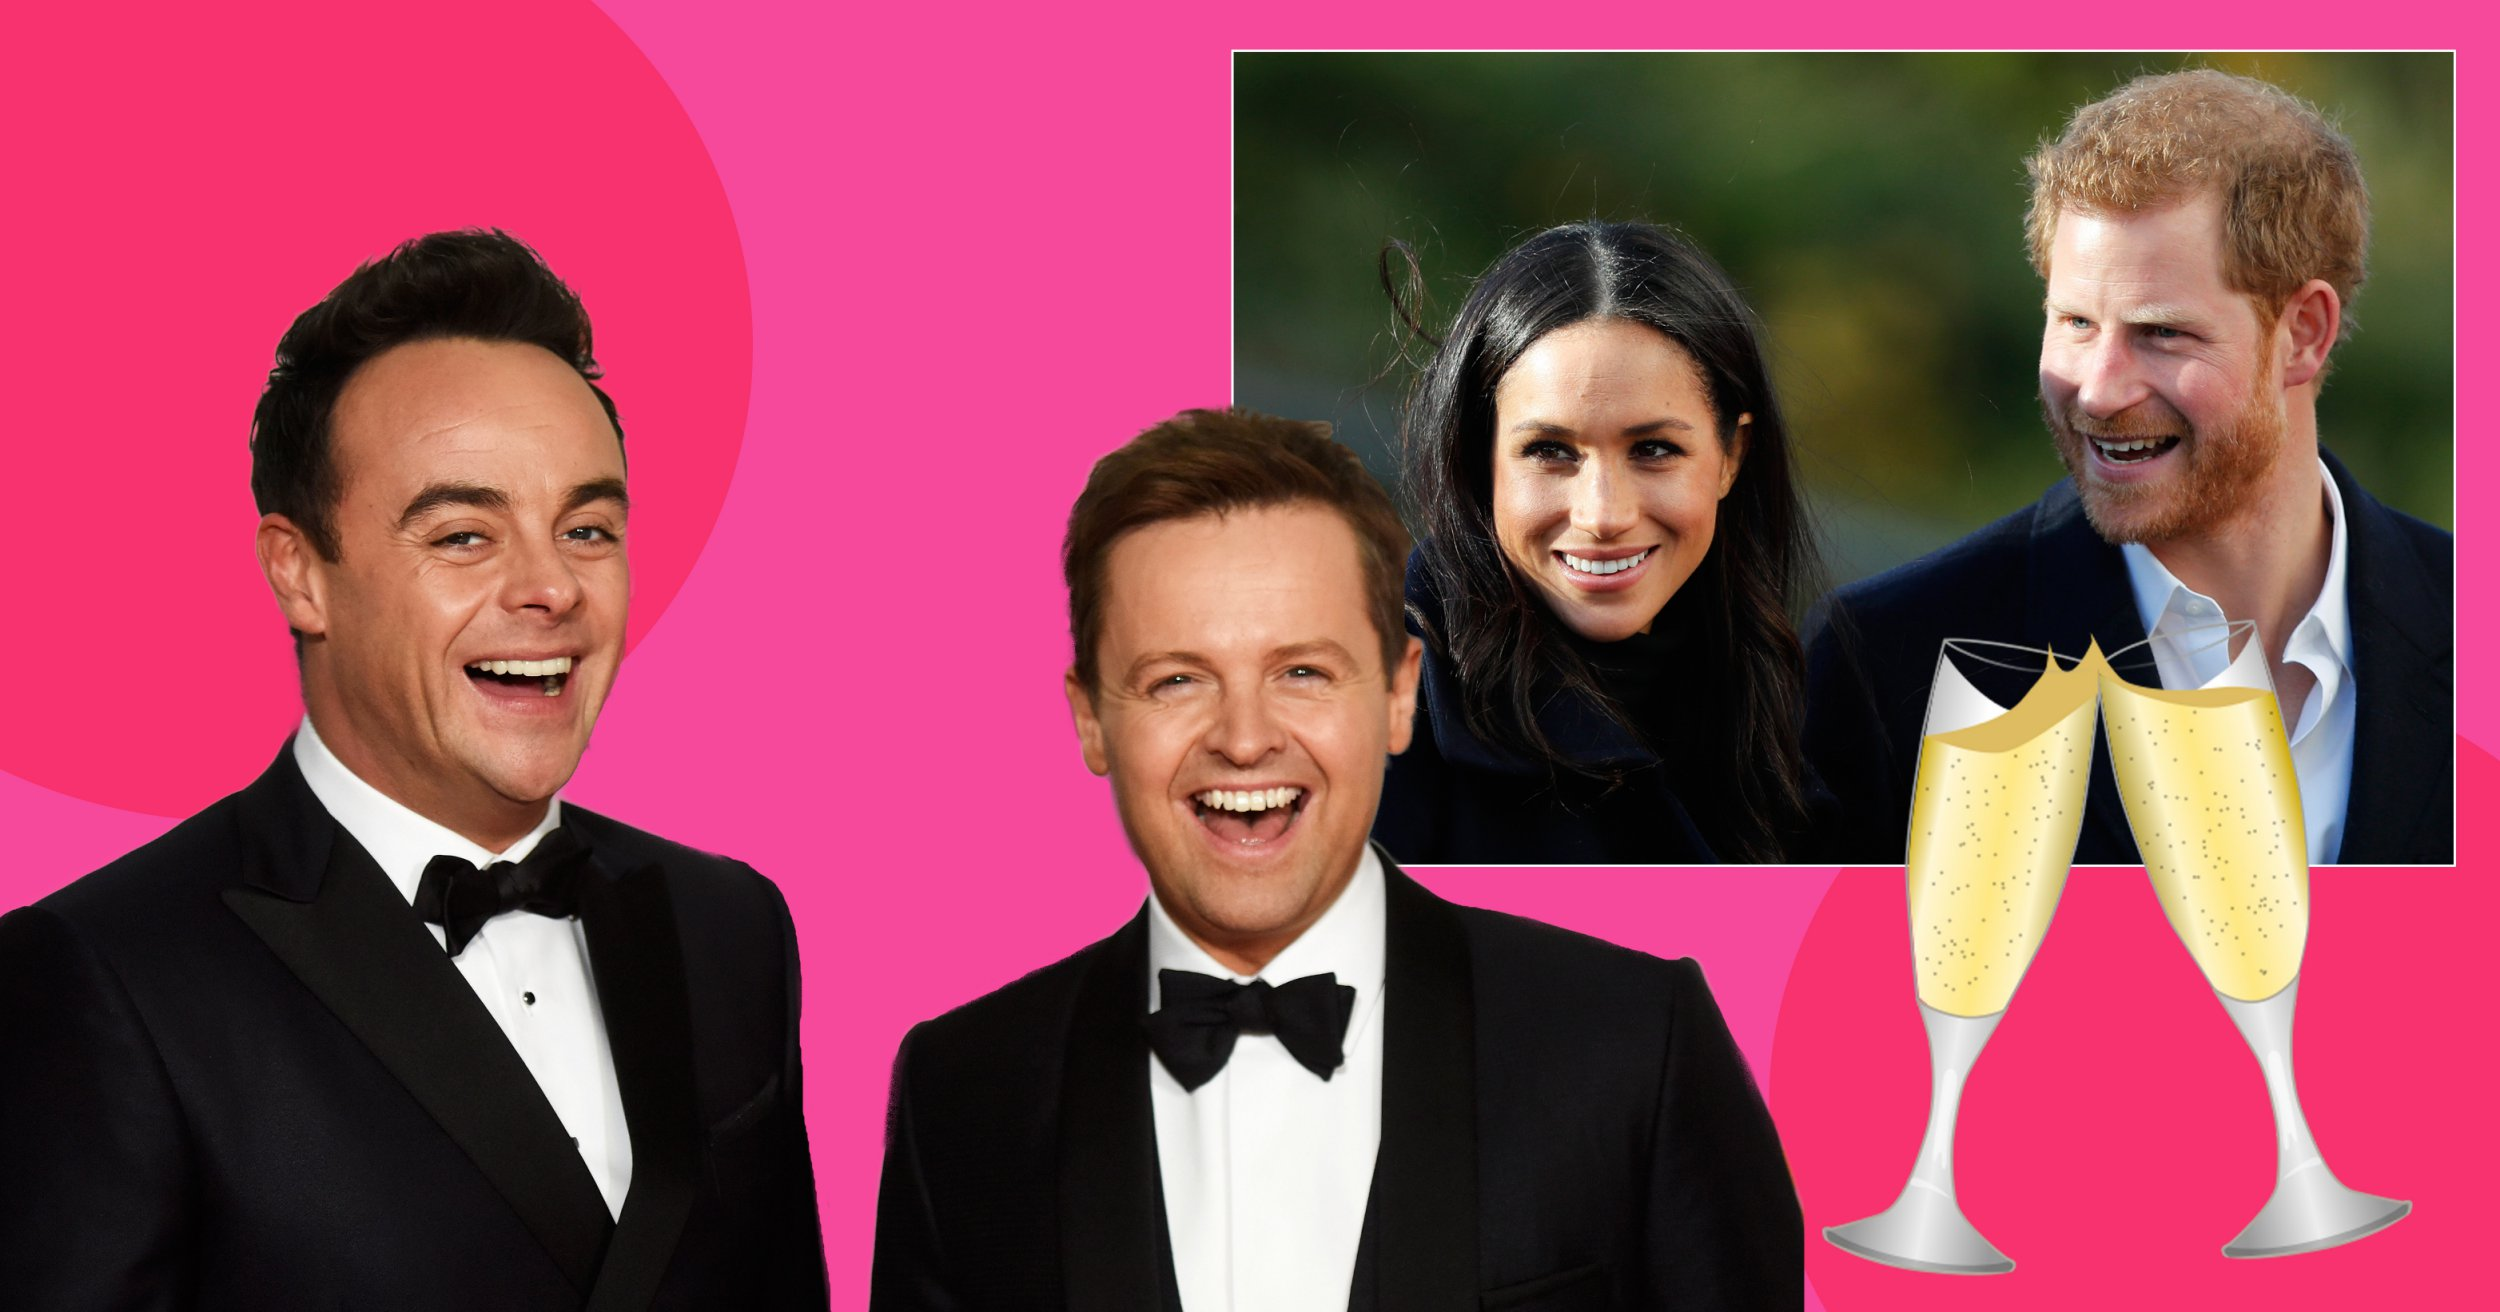 Ant and Dec are hoping for an invite to the 'night do' of the Royal Wedding